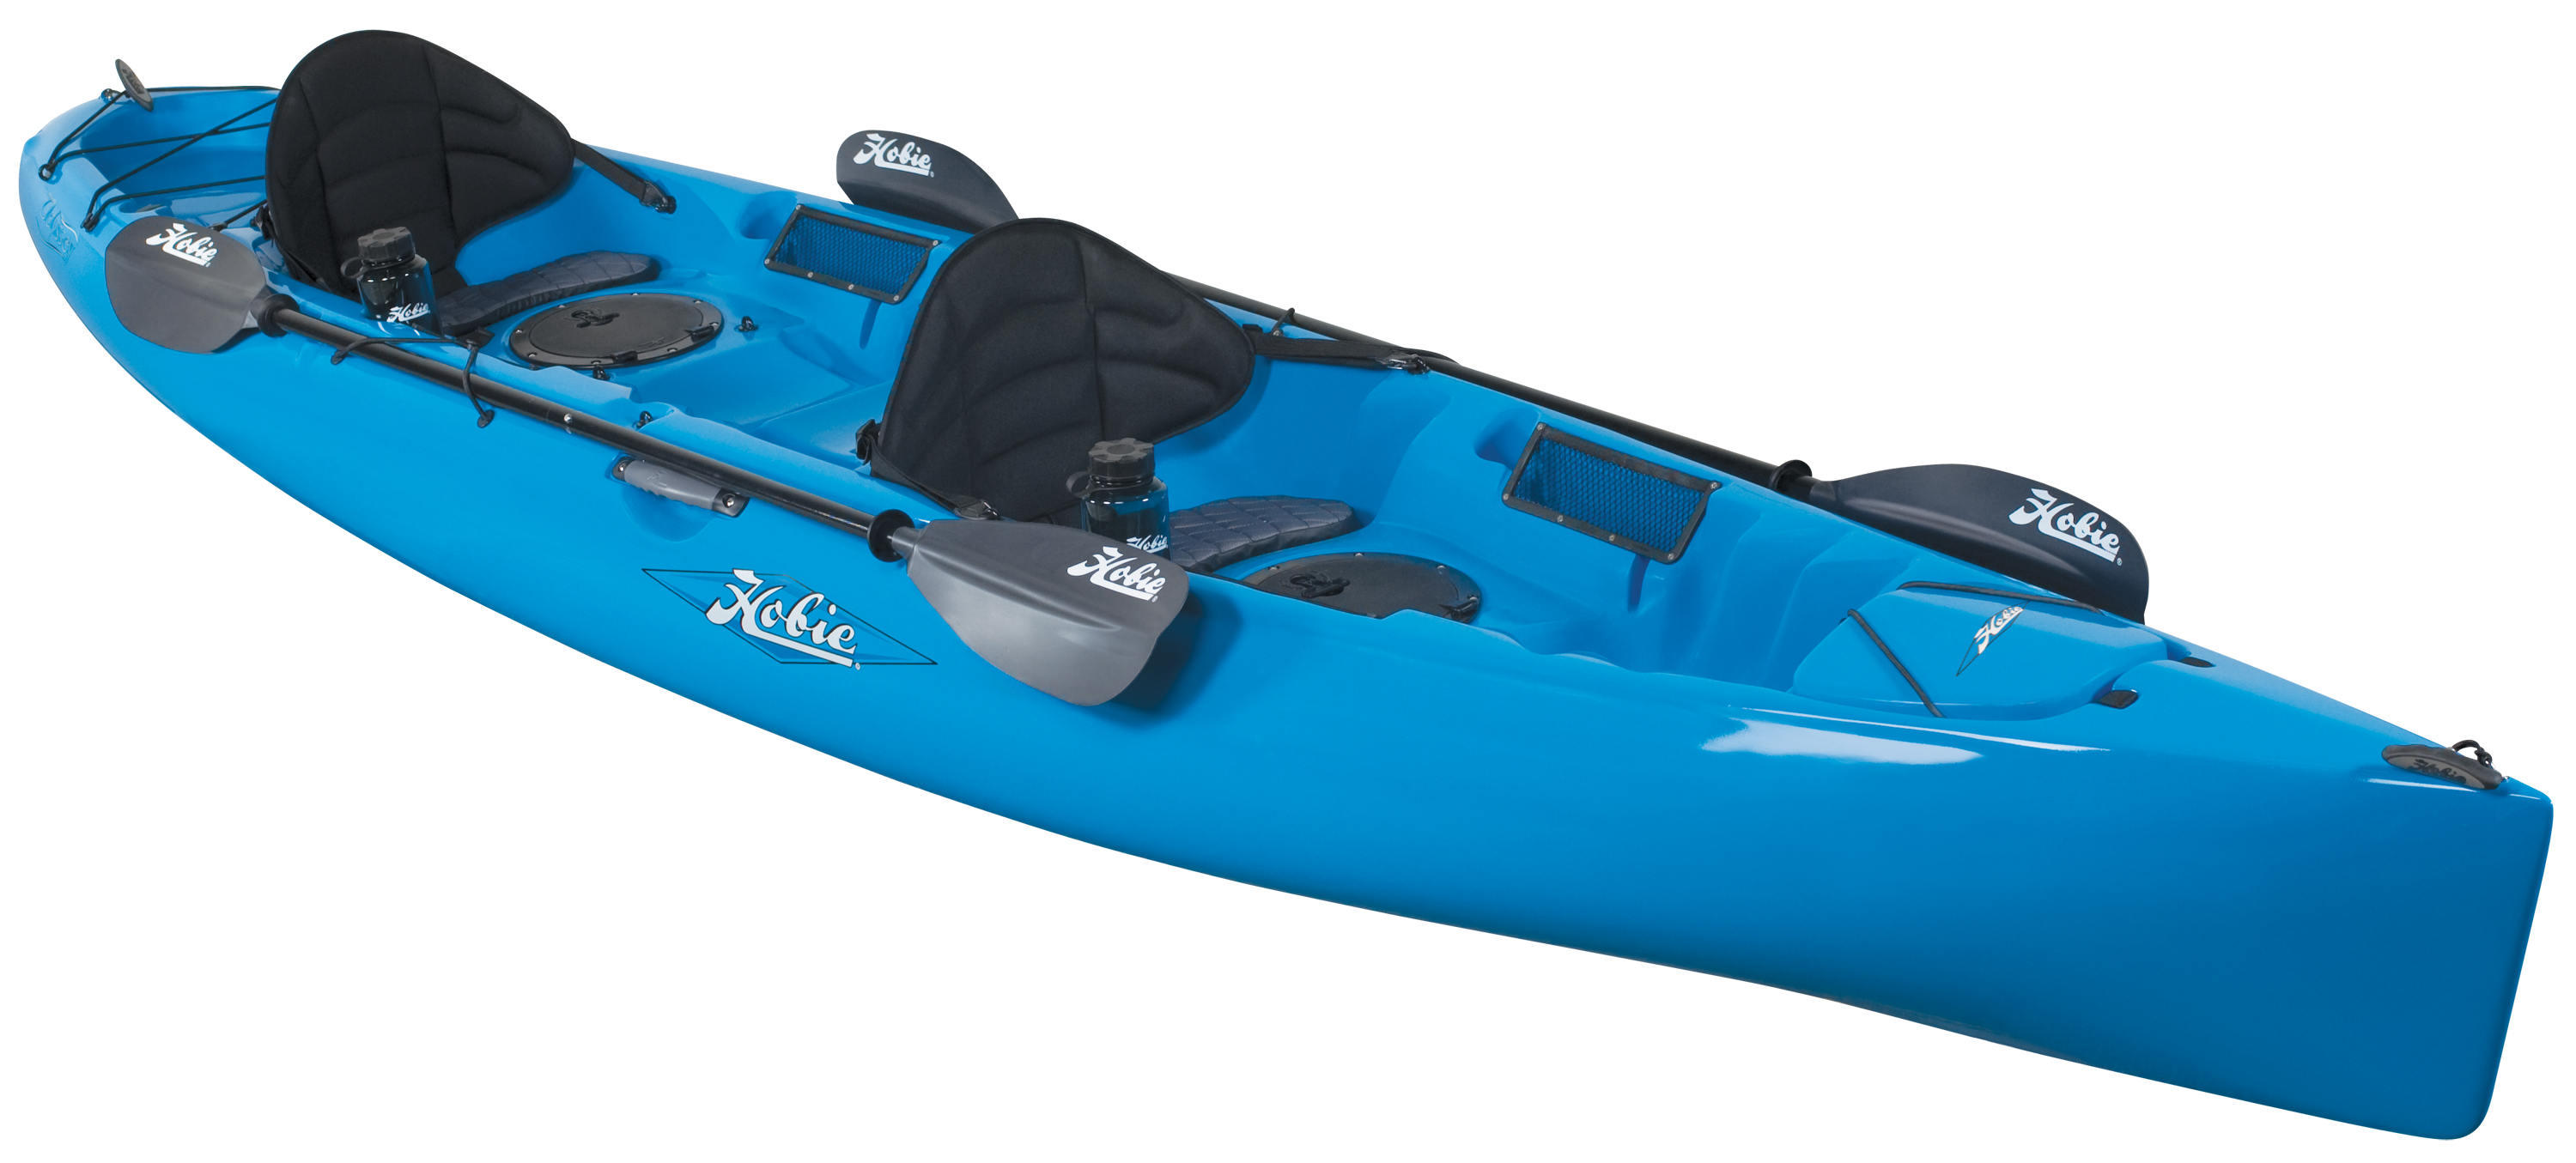 Hobie Cat Introduces Two Tandem Kayaks To Arsenal Of